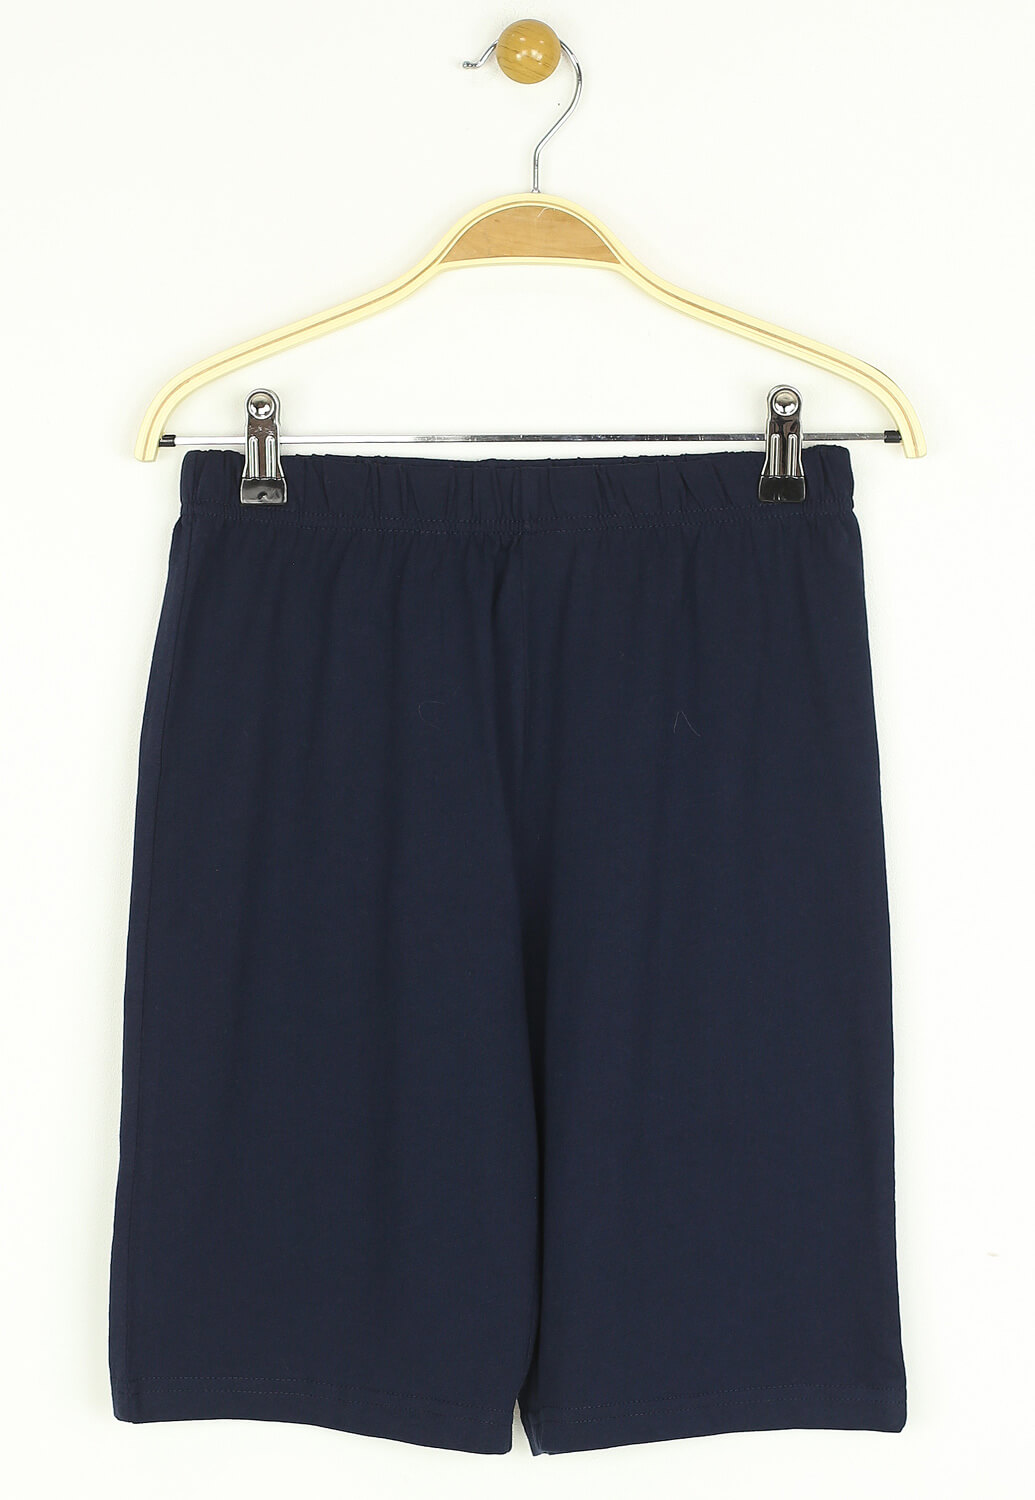 Pijama Kiabi Nile Dark Blue